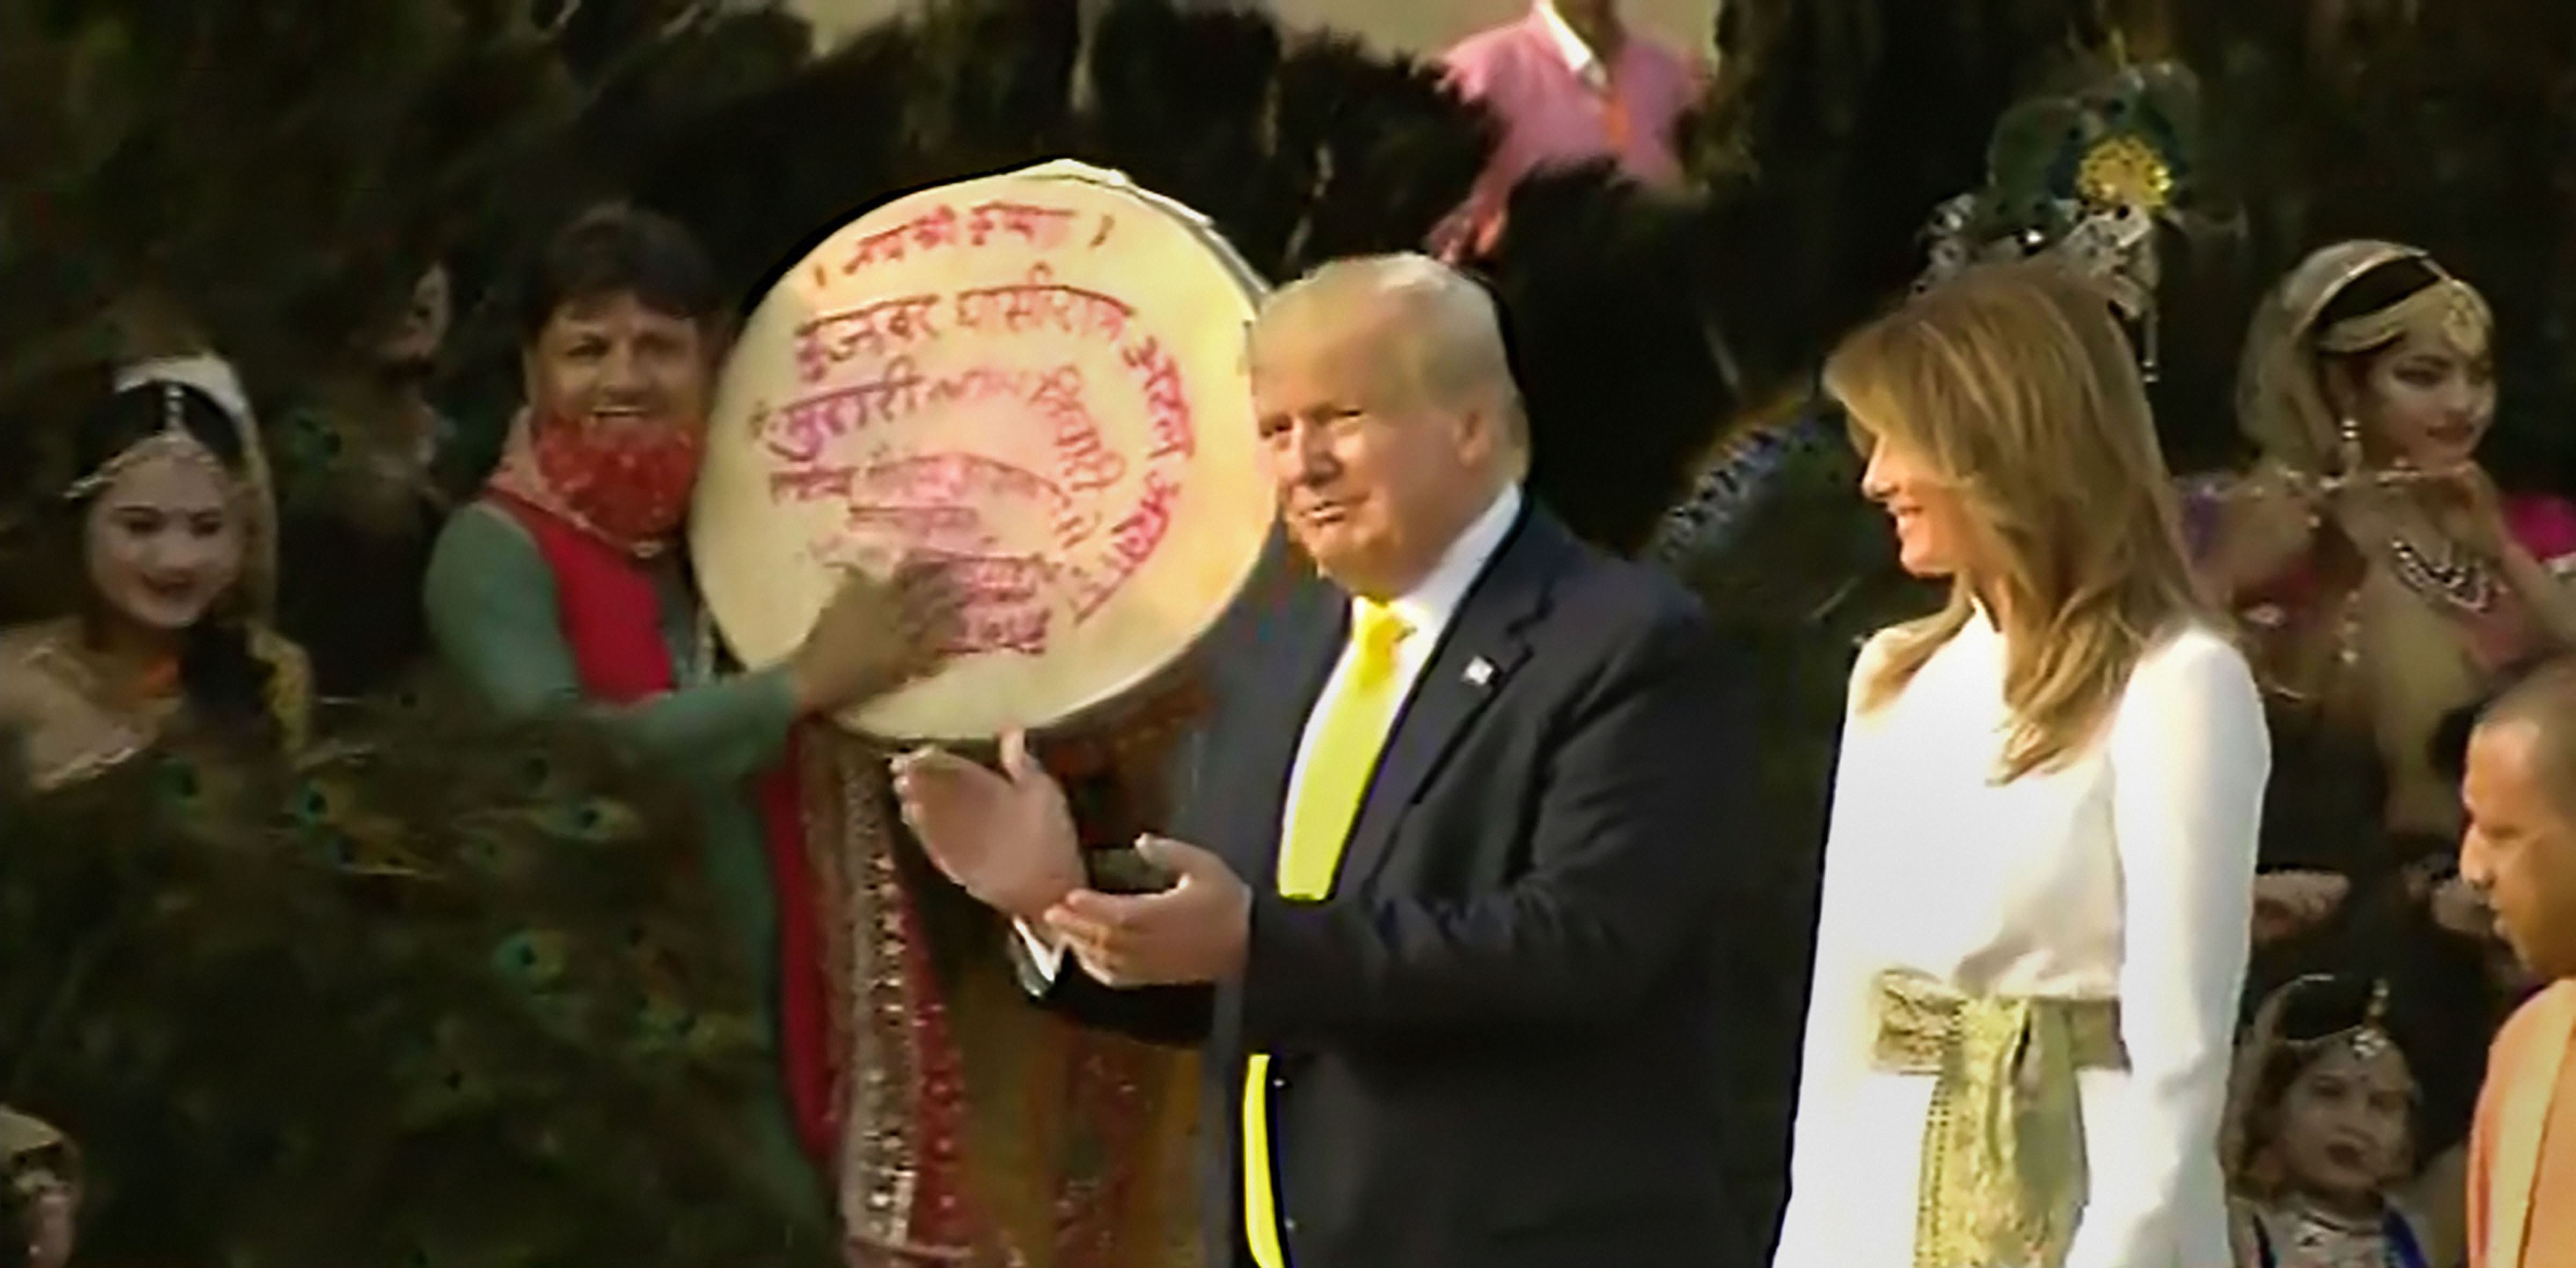 US President Donald Trump accompanied by First Lady Melania Trump arrive in Agra, Monday, February 24, 2020